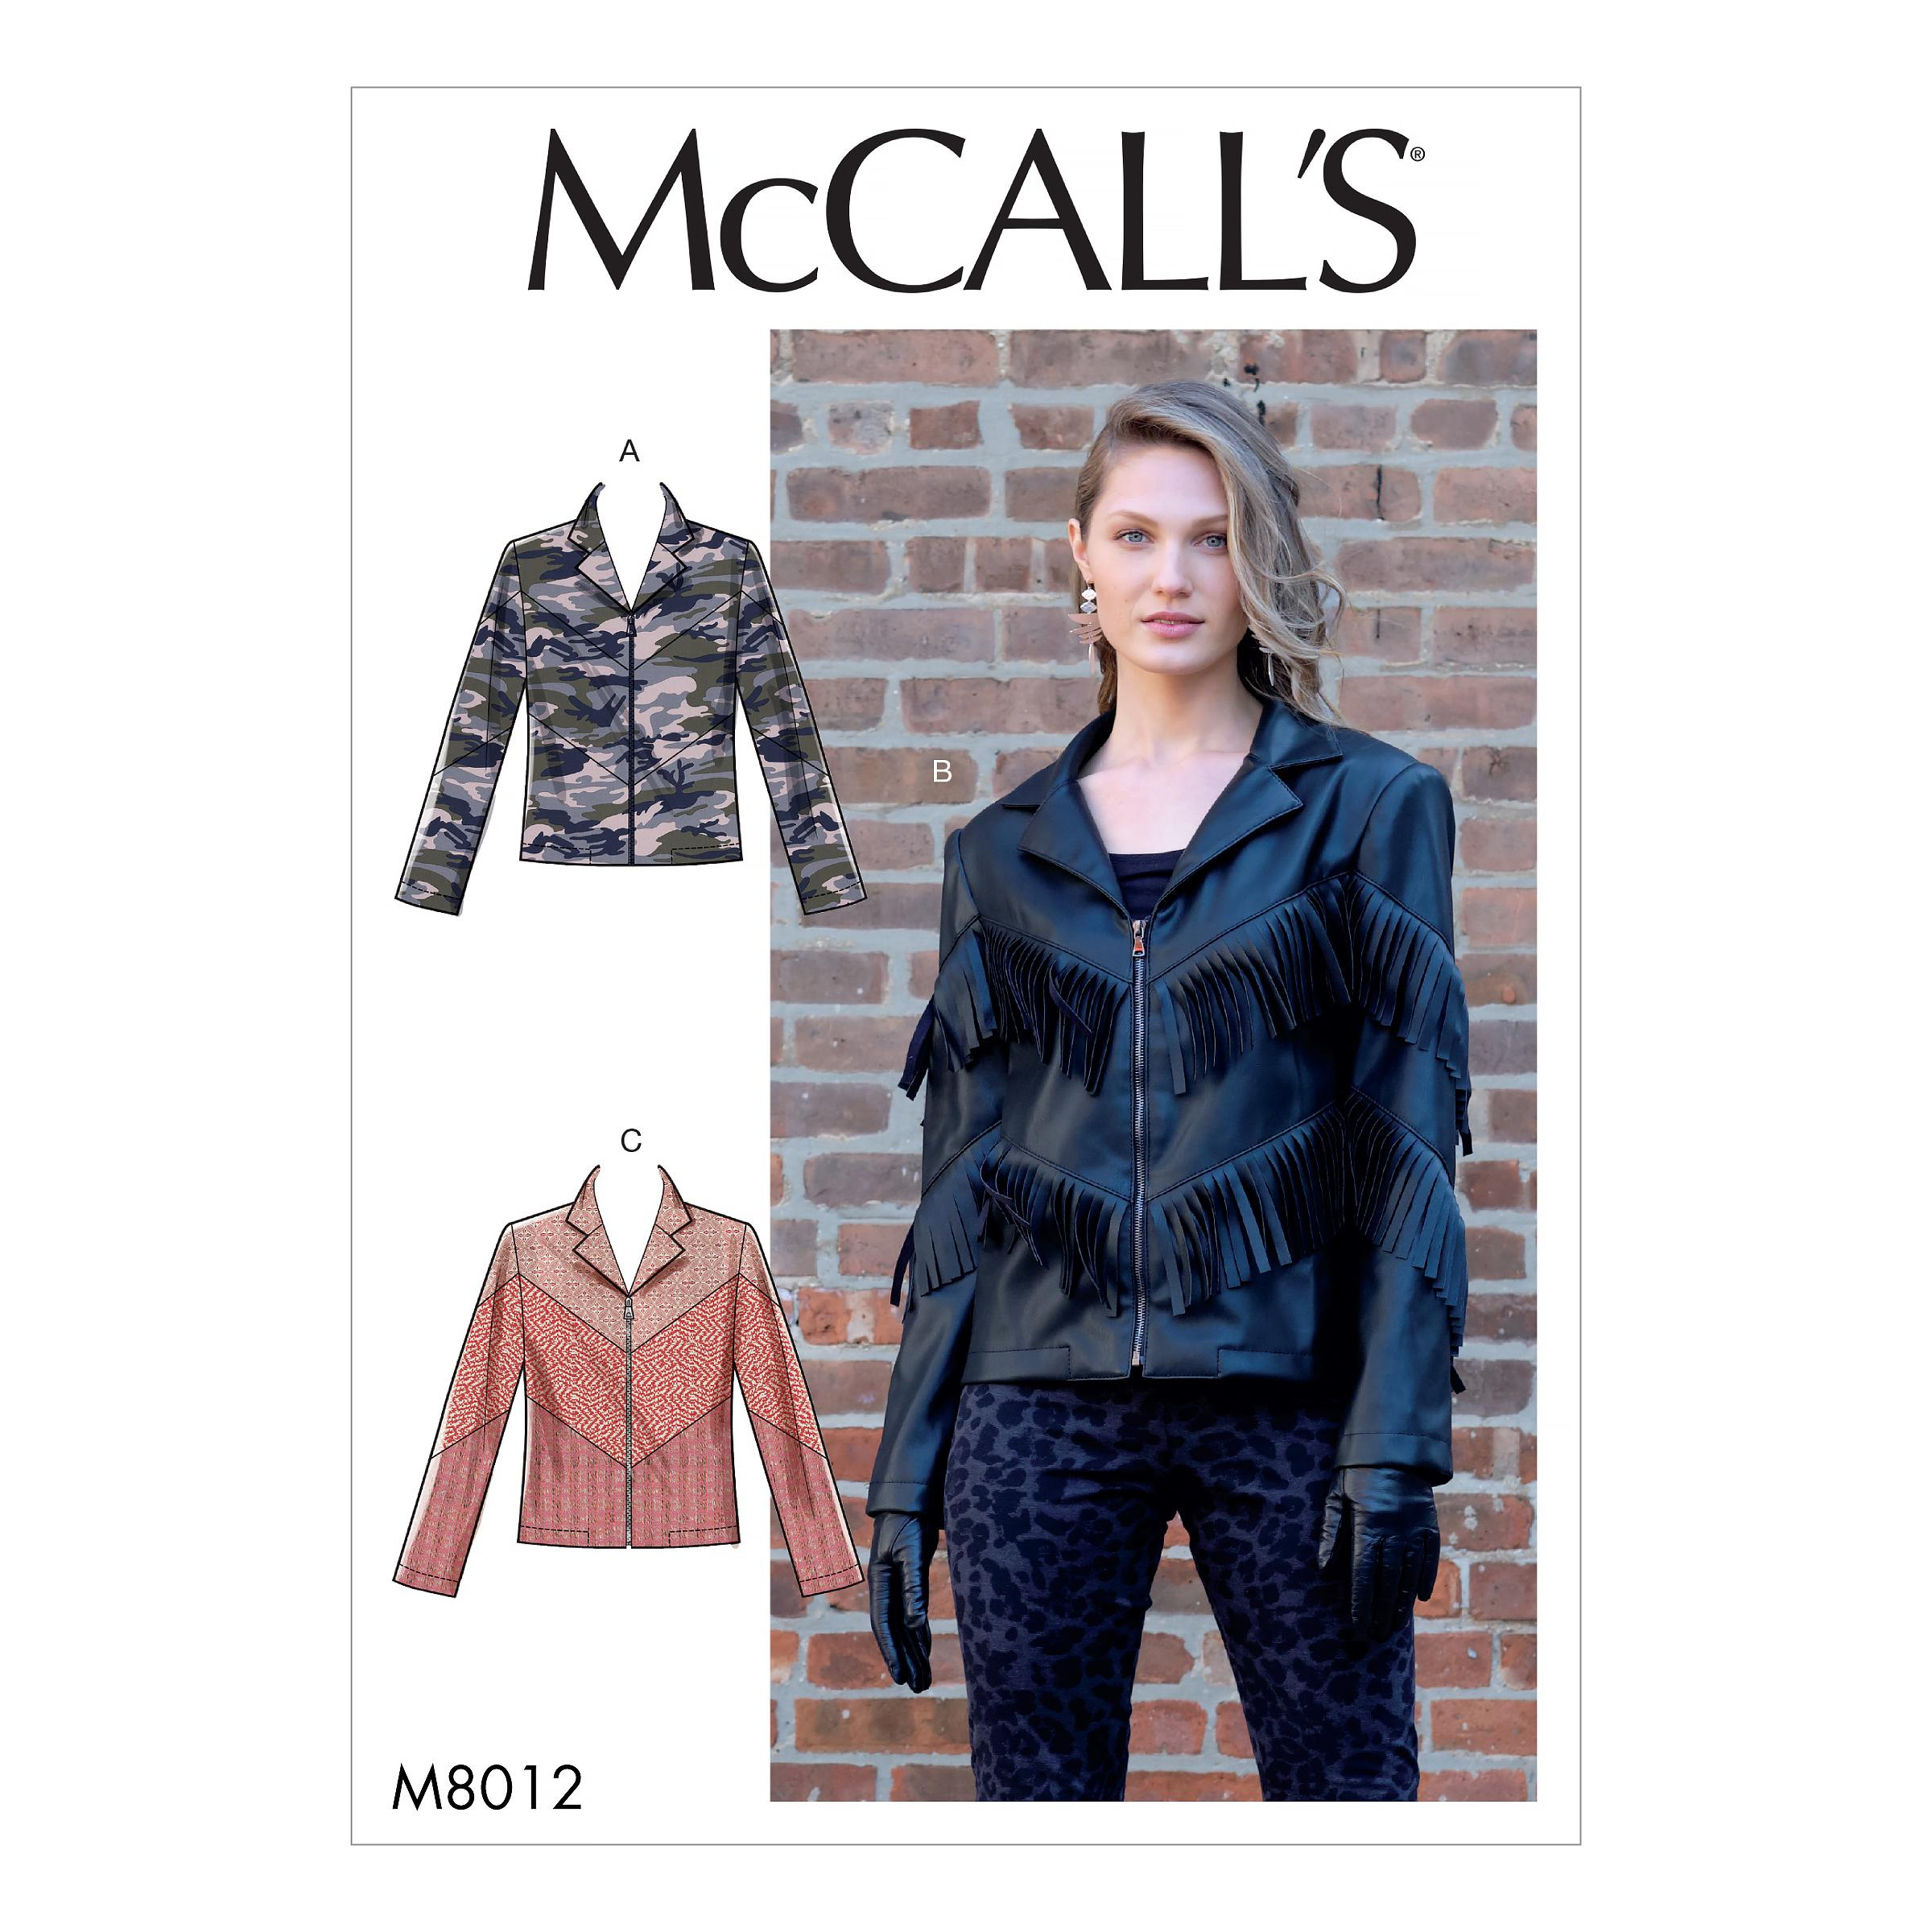 McCalls M8012 Misses Jackets & Vests